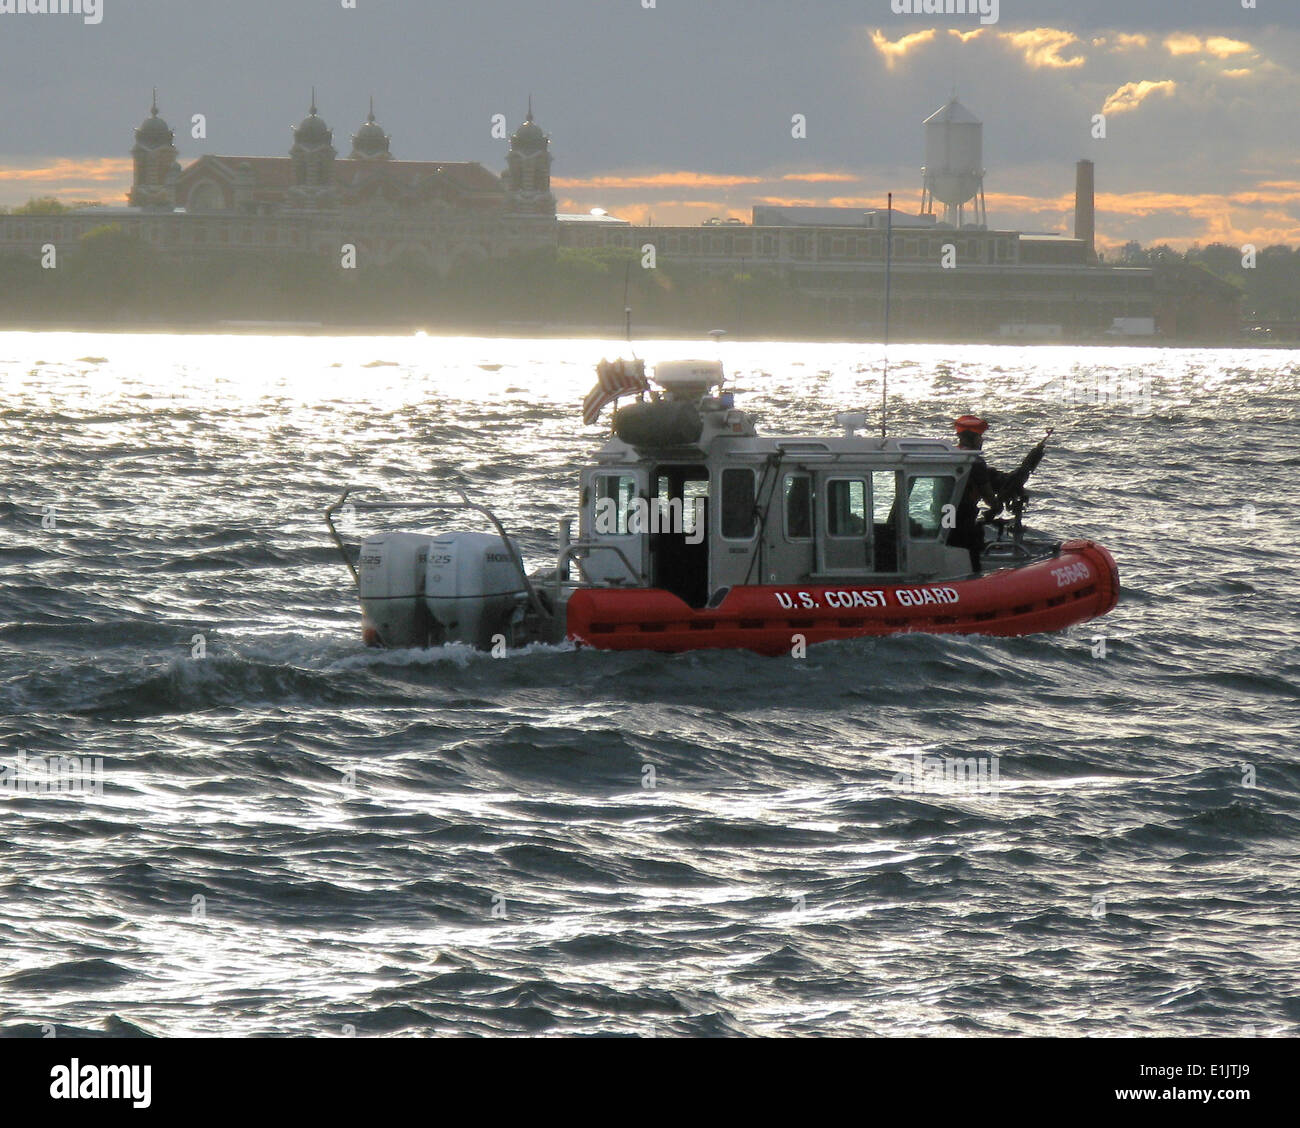 A 25-foot response boat from Coast Guard Station New York underway in New York Harbor at dusk. Developed in a direct Stock Photo